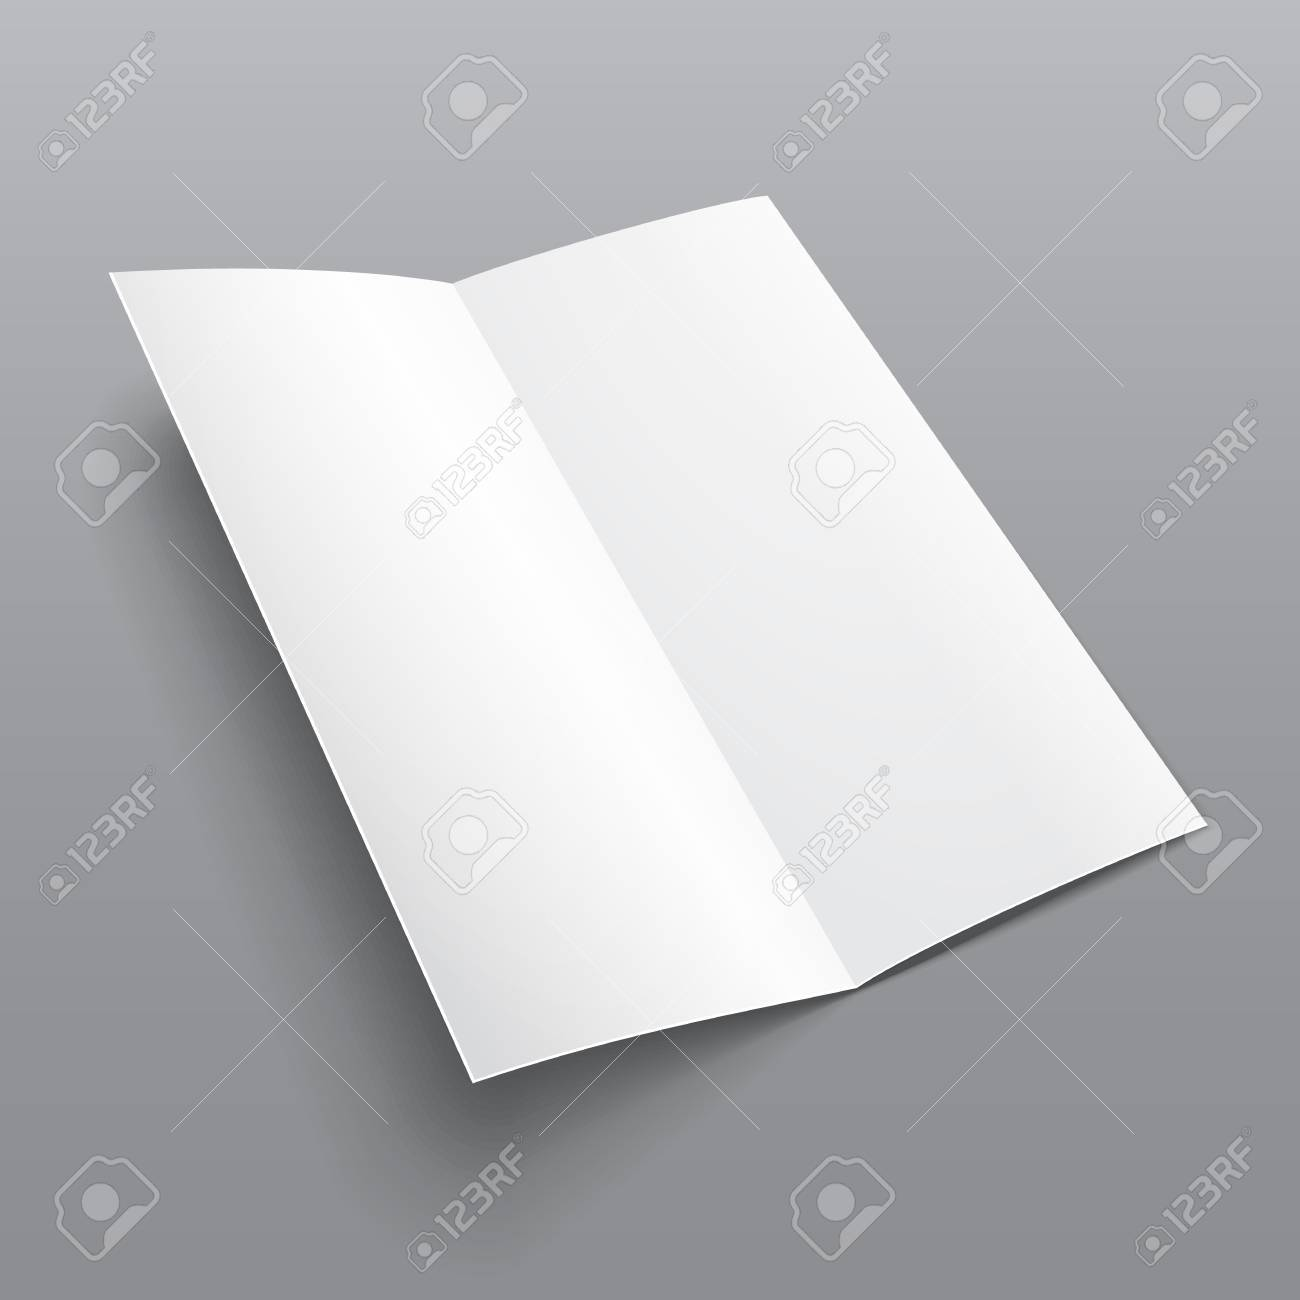 blank trifold paper brochure with shadows on gray background